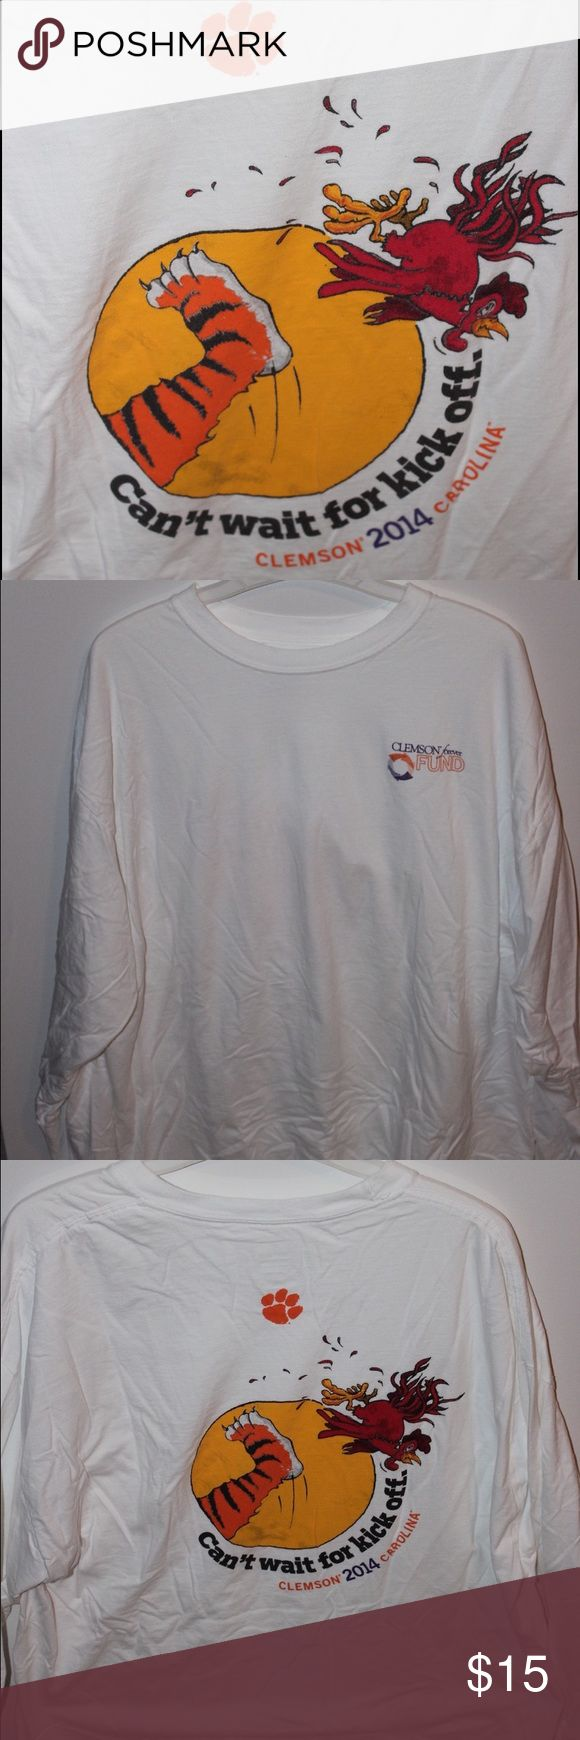 Clemson vs. USC t-shirt White long-sleeved t-shirt with Clemson vs. USC theme; ONLY WORN ONCE Tops Tees - Short Sleeve